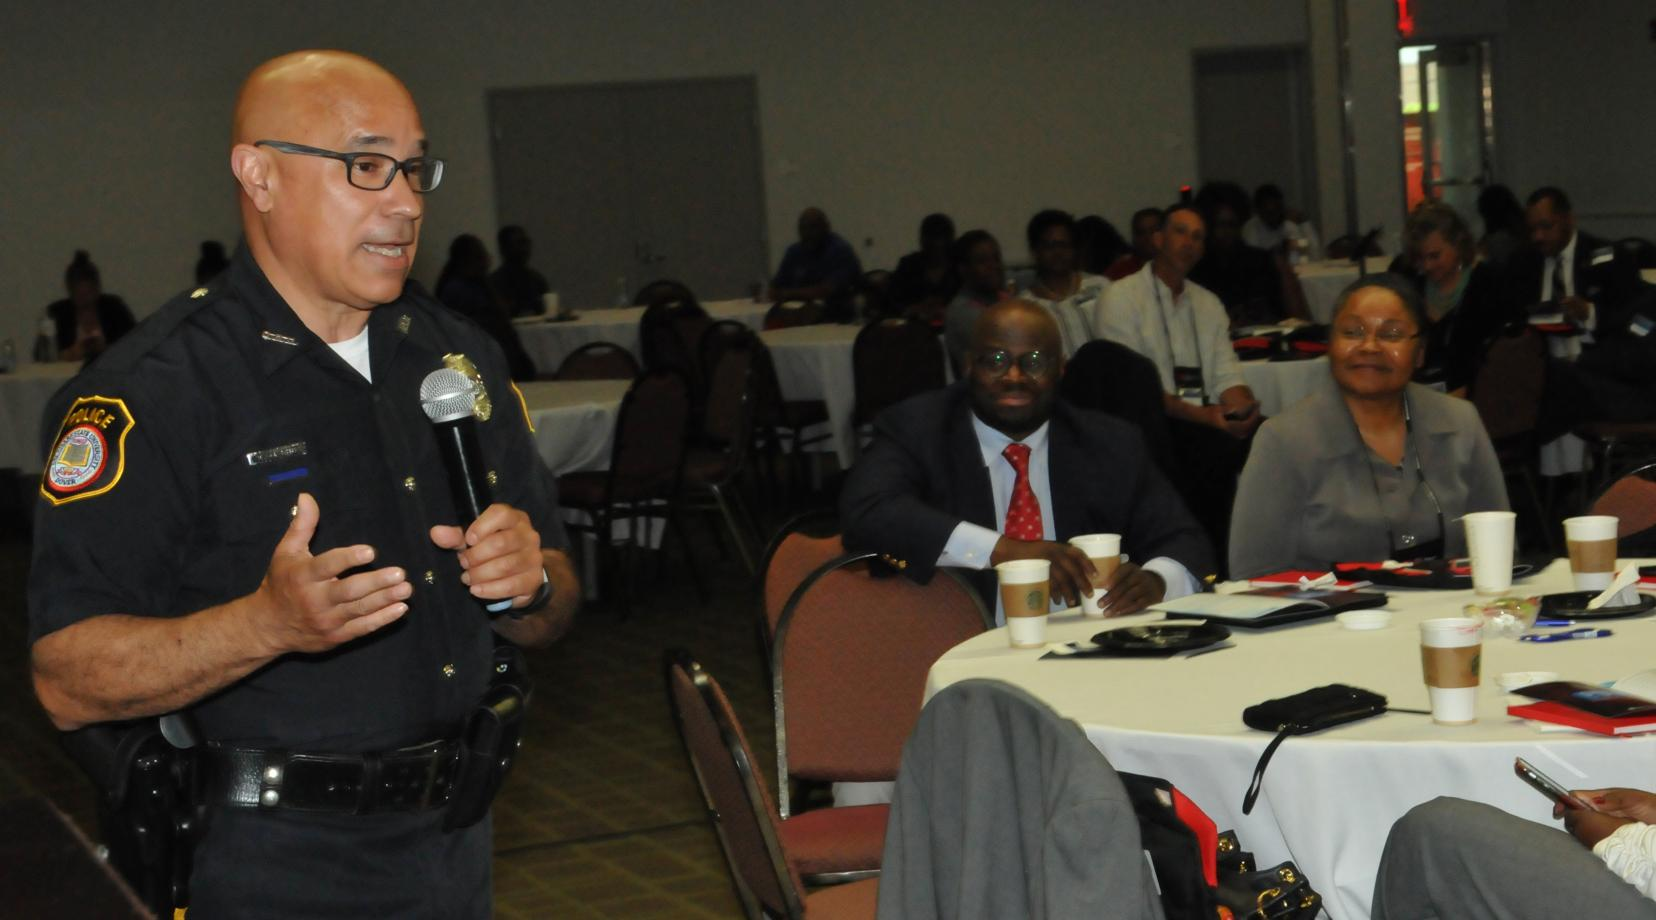 <p>DSU Ptlm. Jorge Camacho gave presentations on campus safety and emergency response/activity shooter.</p>